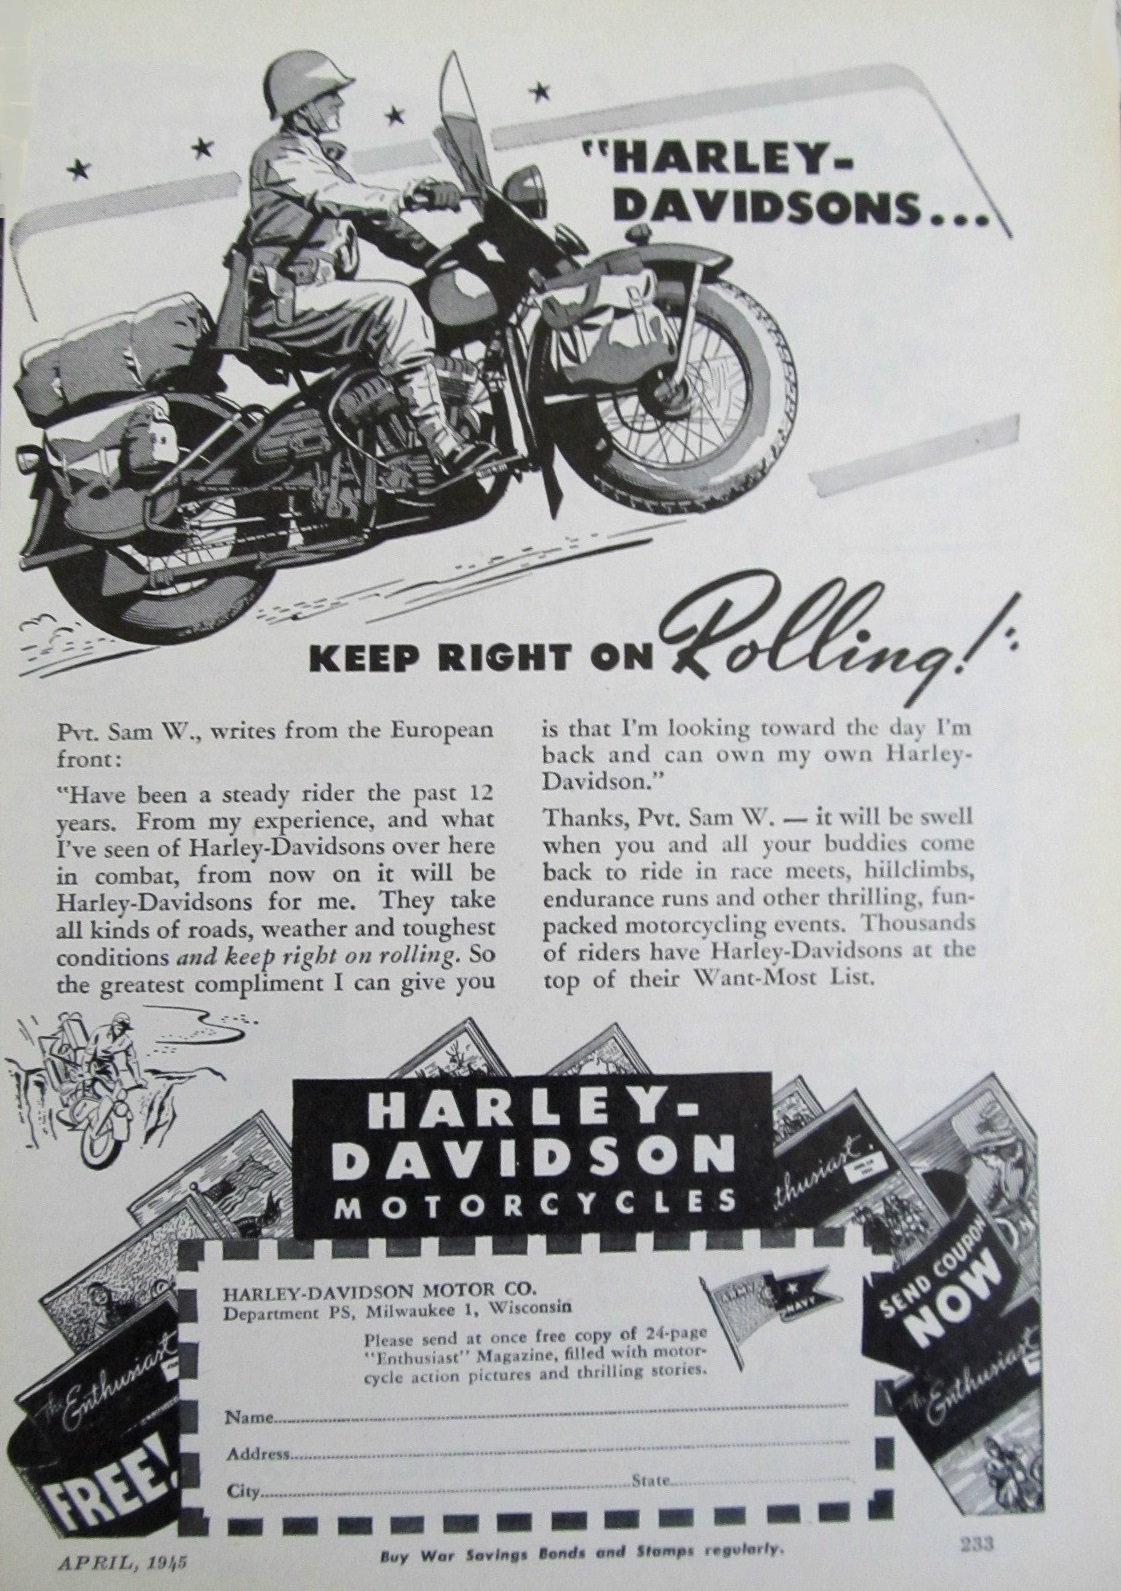 Harley-Davidson keep right on rolling